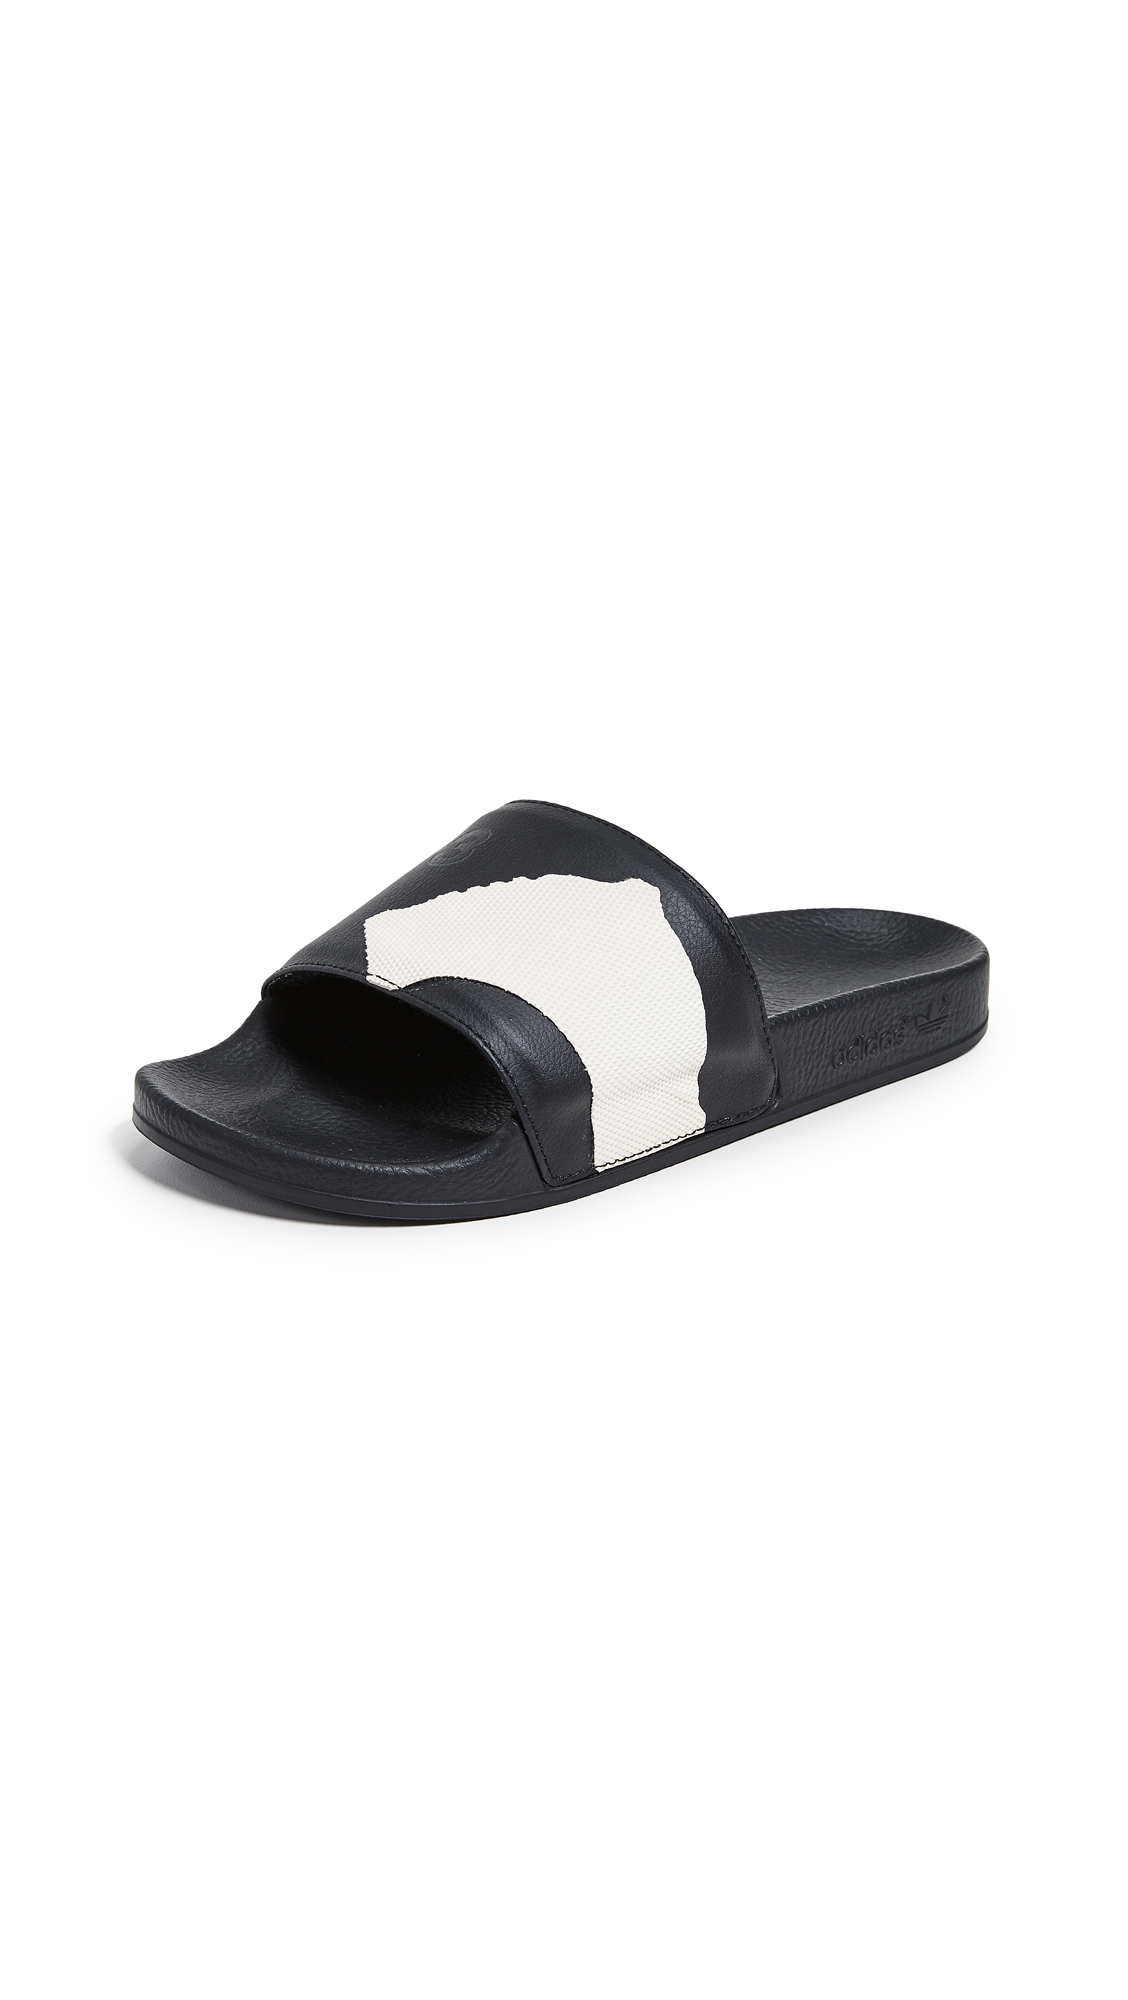 Y-3 Y-3 Adilette Slides - Core Black/Black/White